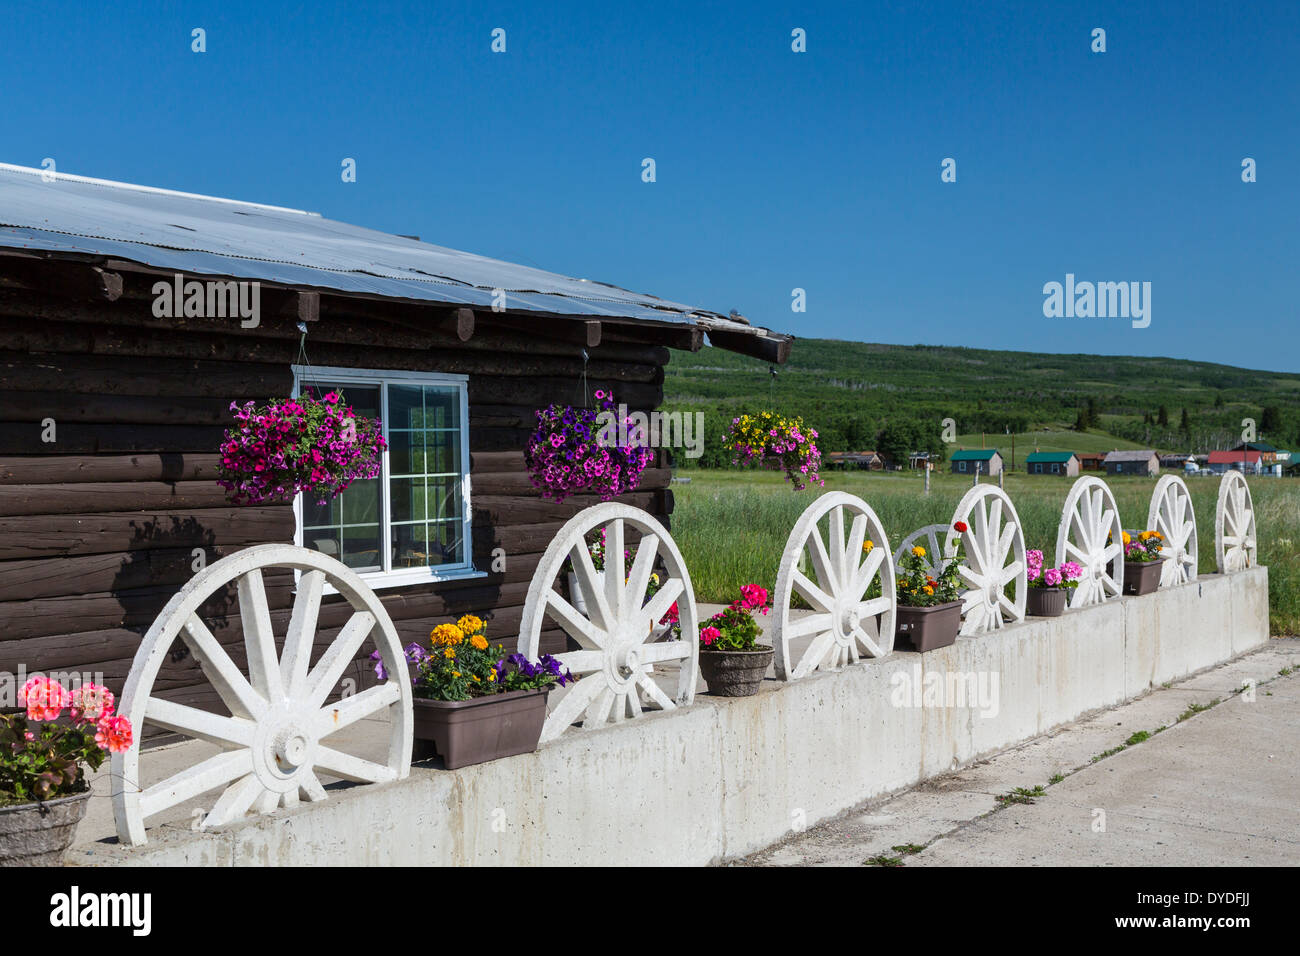 The Cattle Baron Supper Club at Babb, Montana, USA. - Stock Image